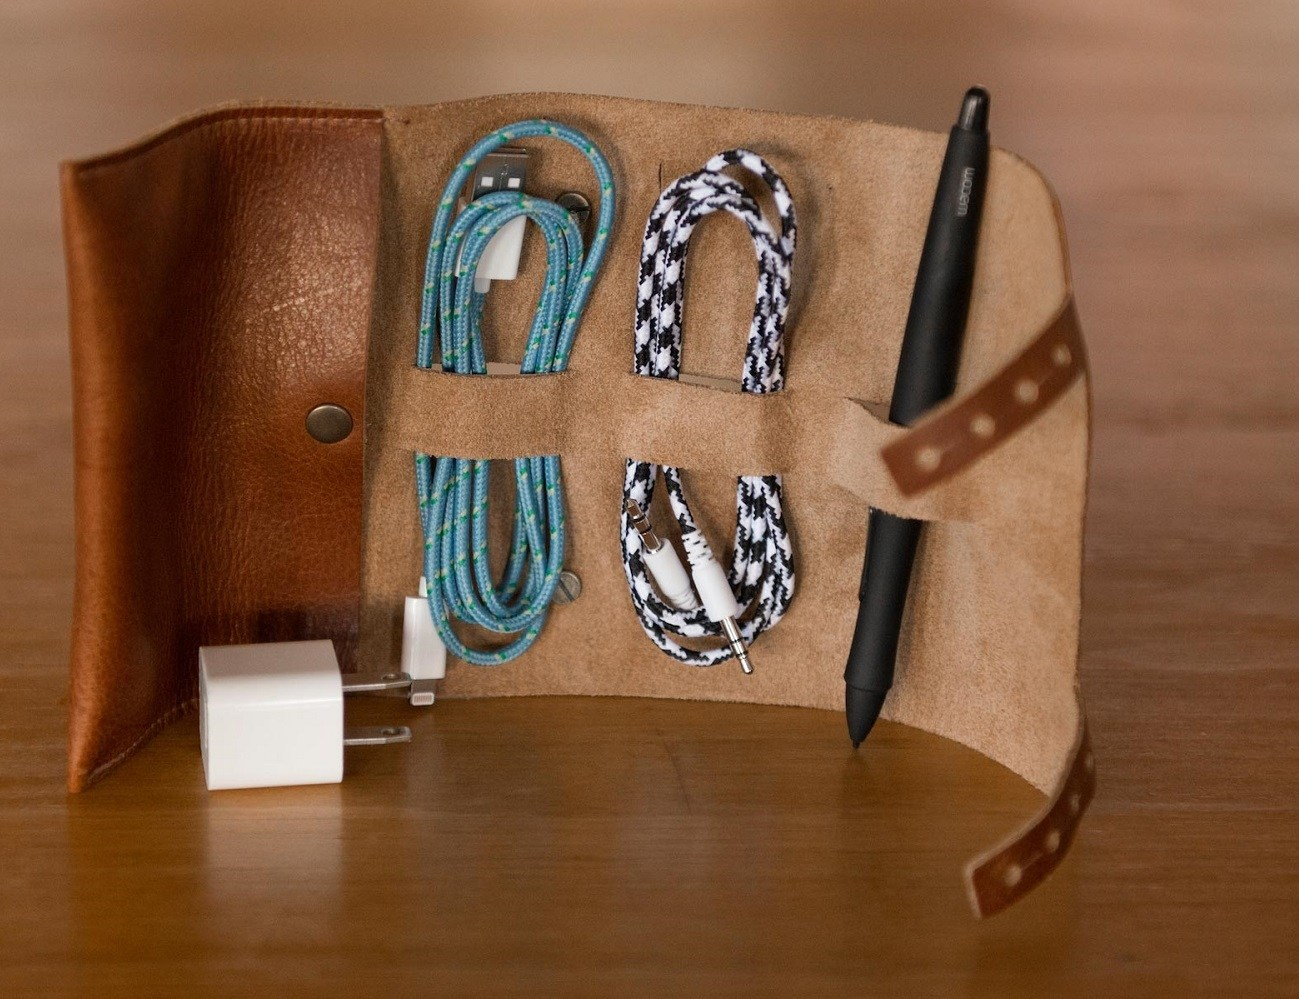 Cordito Cord Wrap – Holds 3 Cables & 2 Plugs